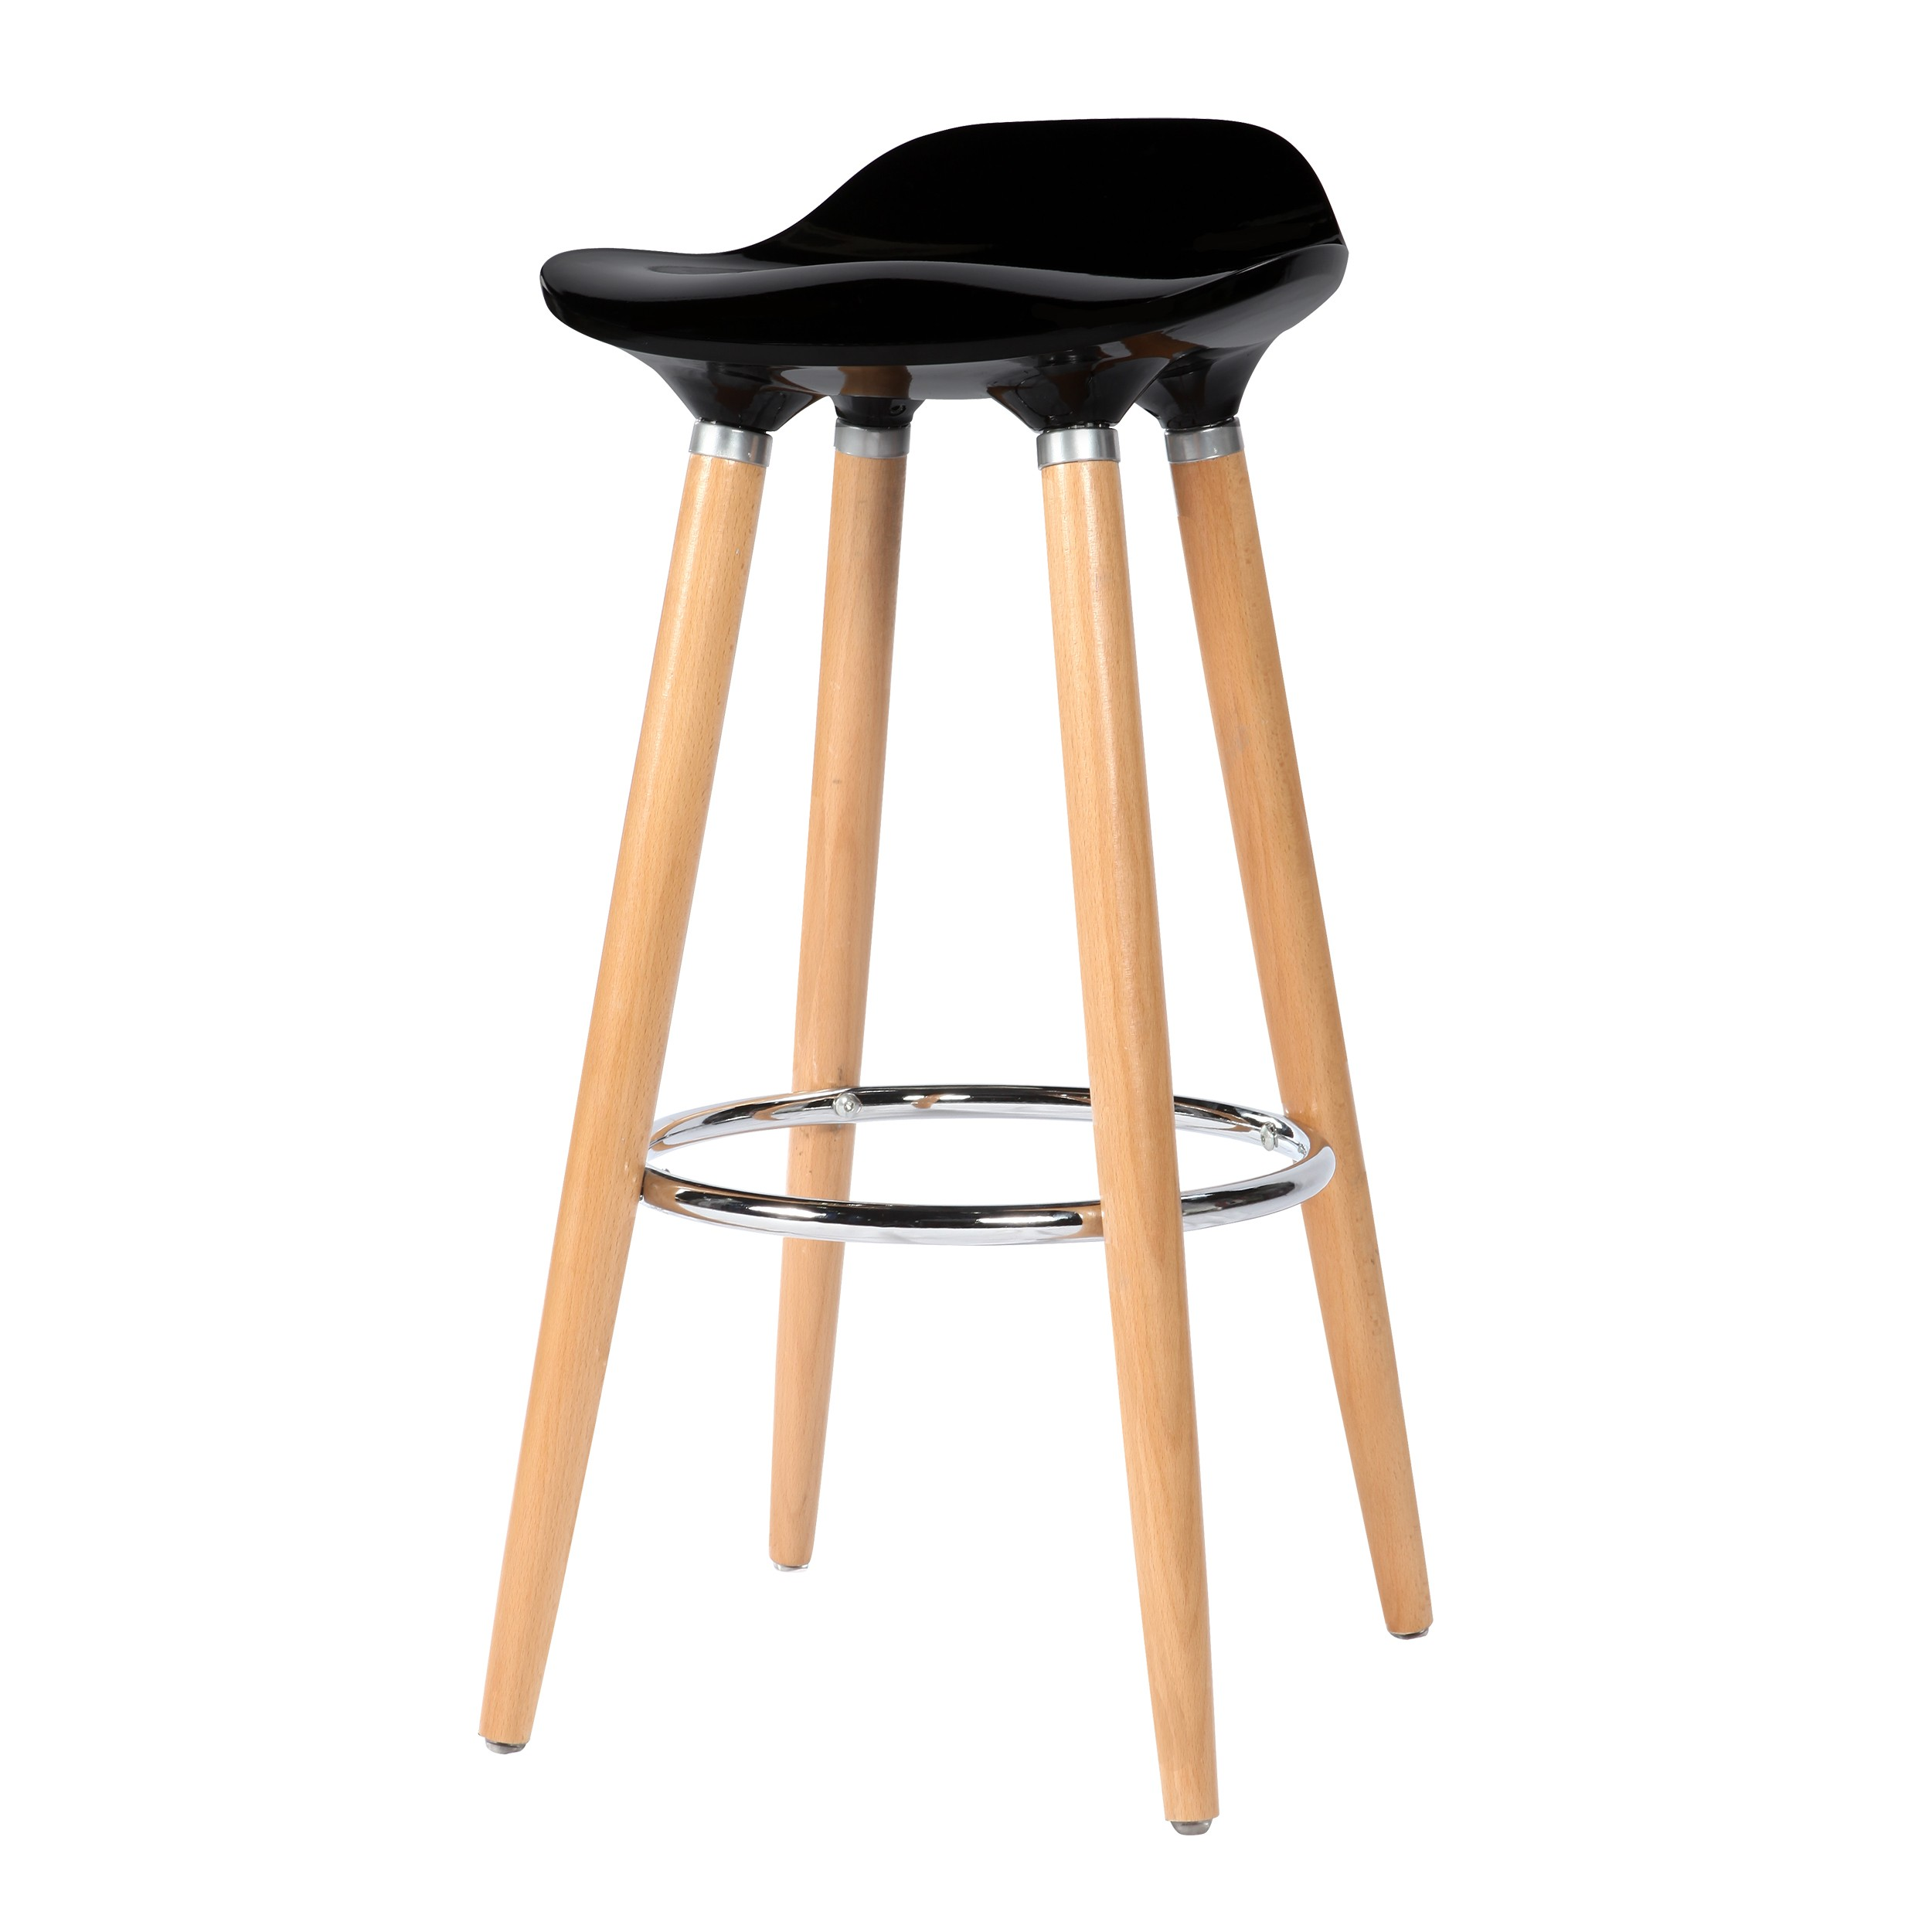 tabouret de bar design italien arredaclick mobilier. Black Bedroom Furniture Sets. Home Design Ideas